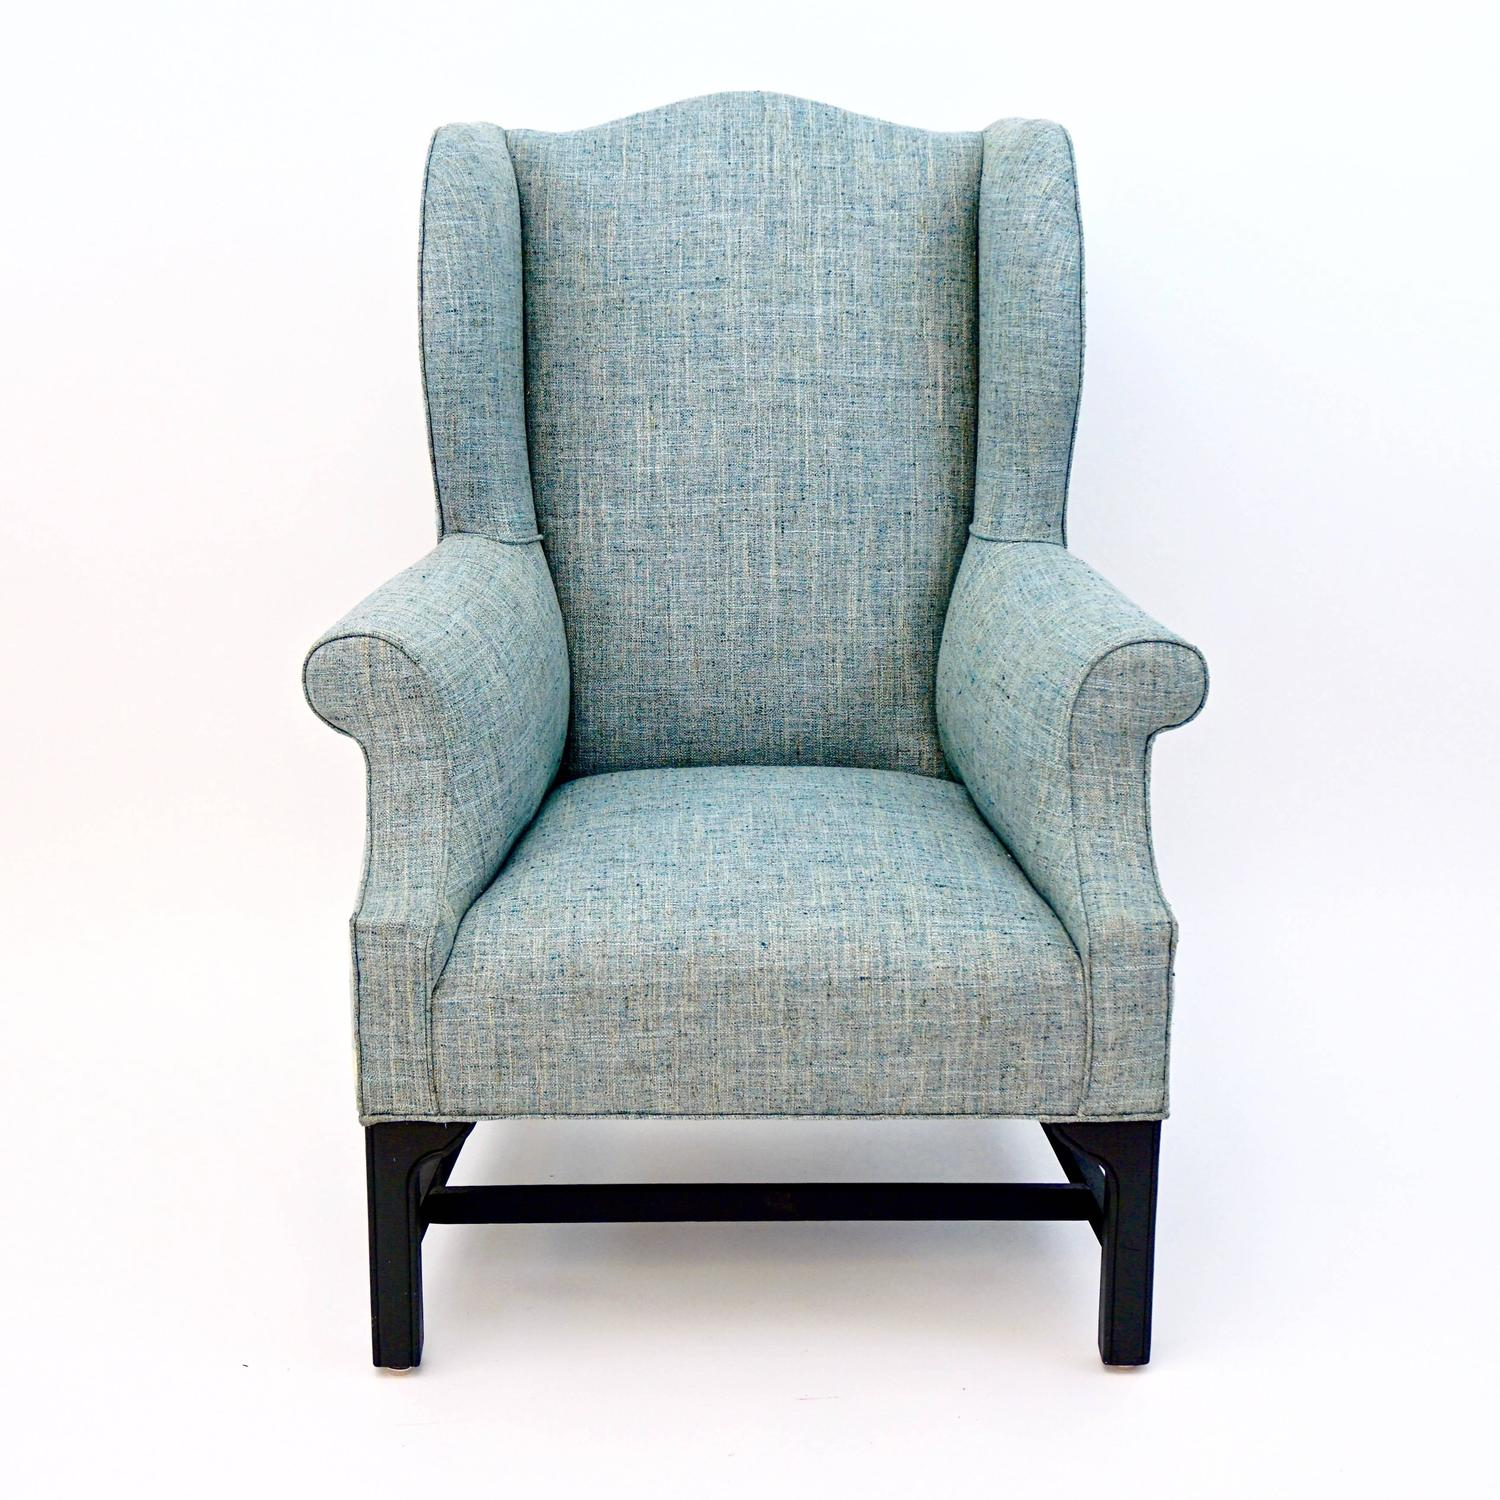 vintage wing chair newly upholstered for sale at 1stdibs On upholstered wing chairs for sale